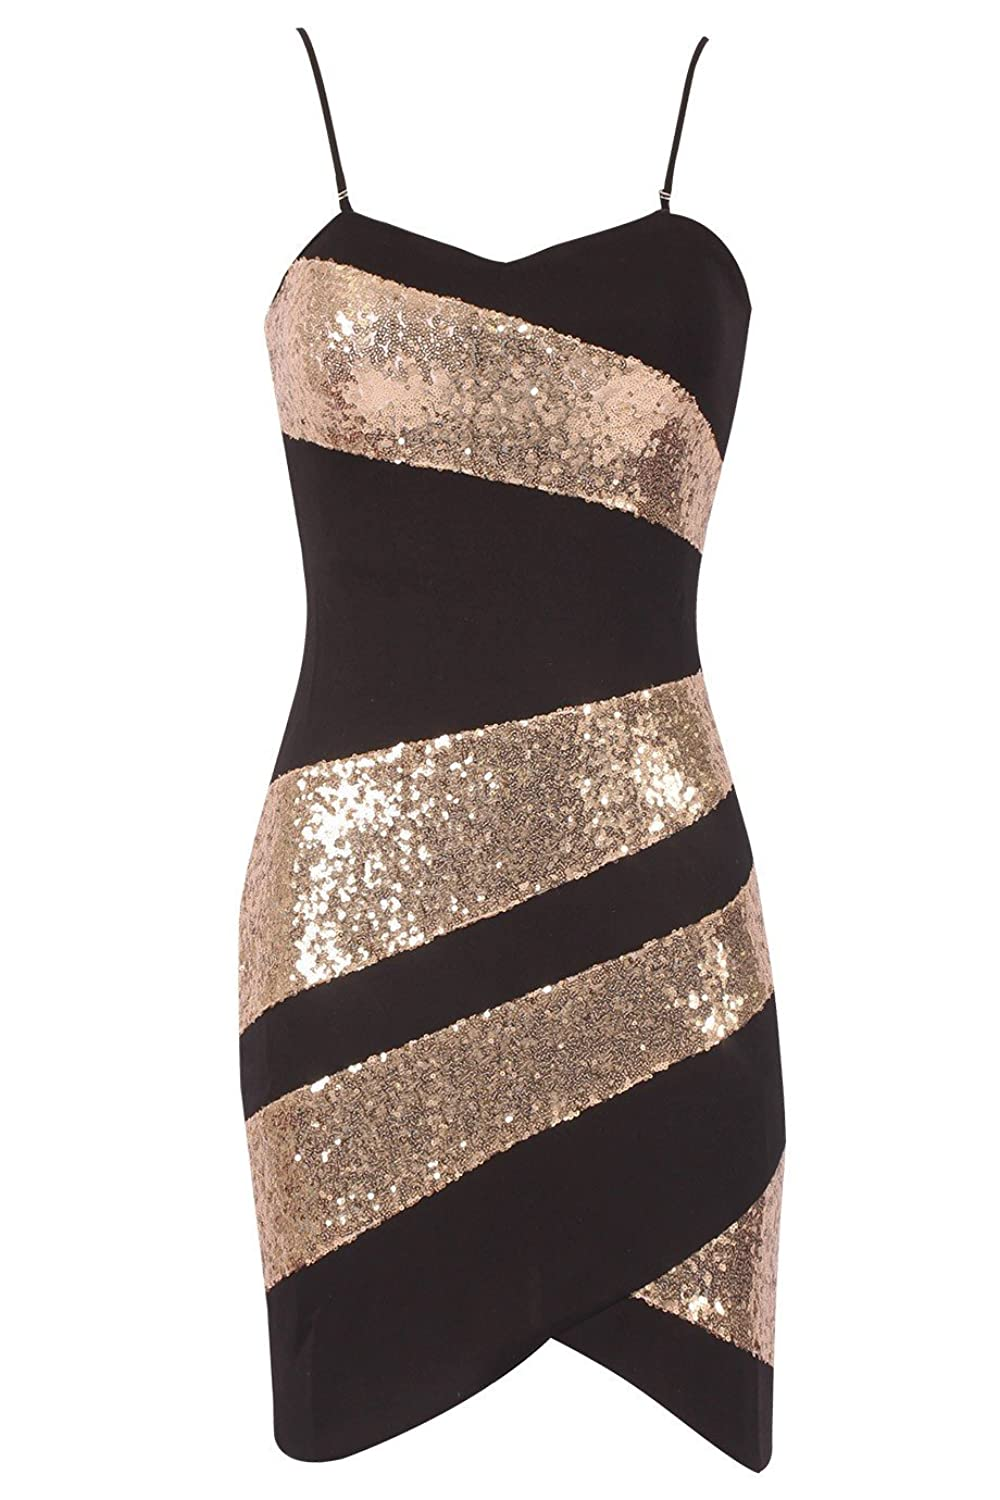 Ladies Sequin Panel Bodycon Dress UK Size 8-16